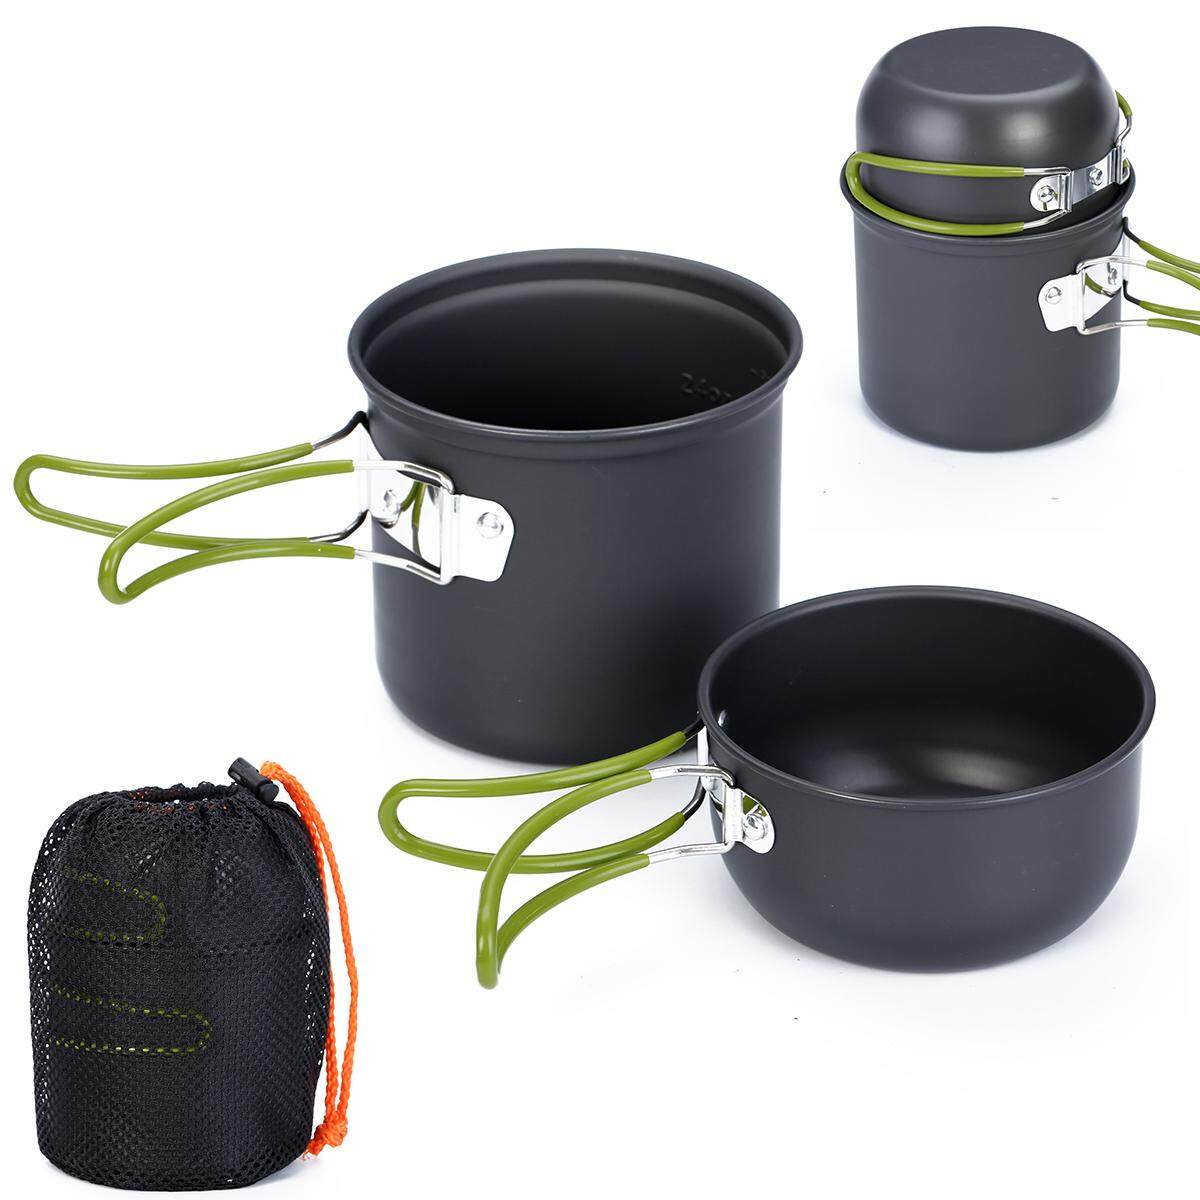 Portable Outdoor Cookware Aluminum Non-stick Pot Cooking Frying Pan Camping Picnic Hiking Utensils With Carry Bag Big Size Elegant In Style Back To Search Resultssports & Entertainment